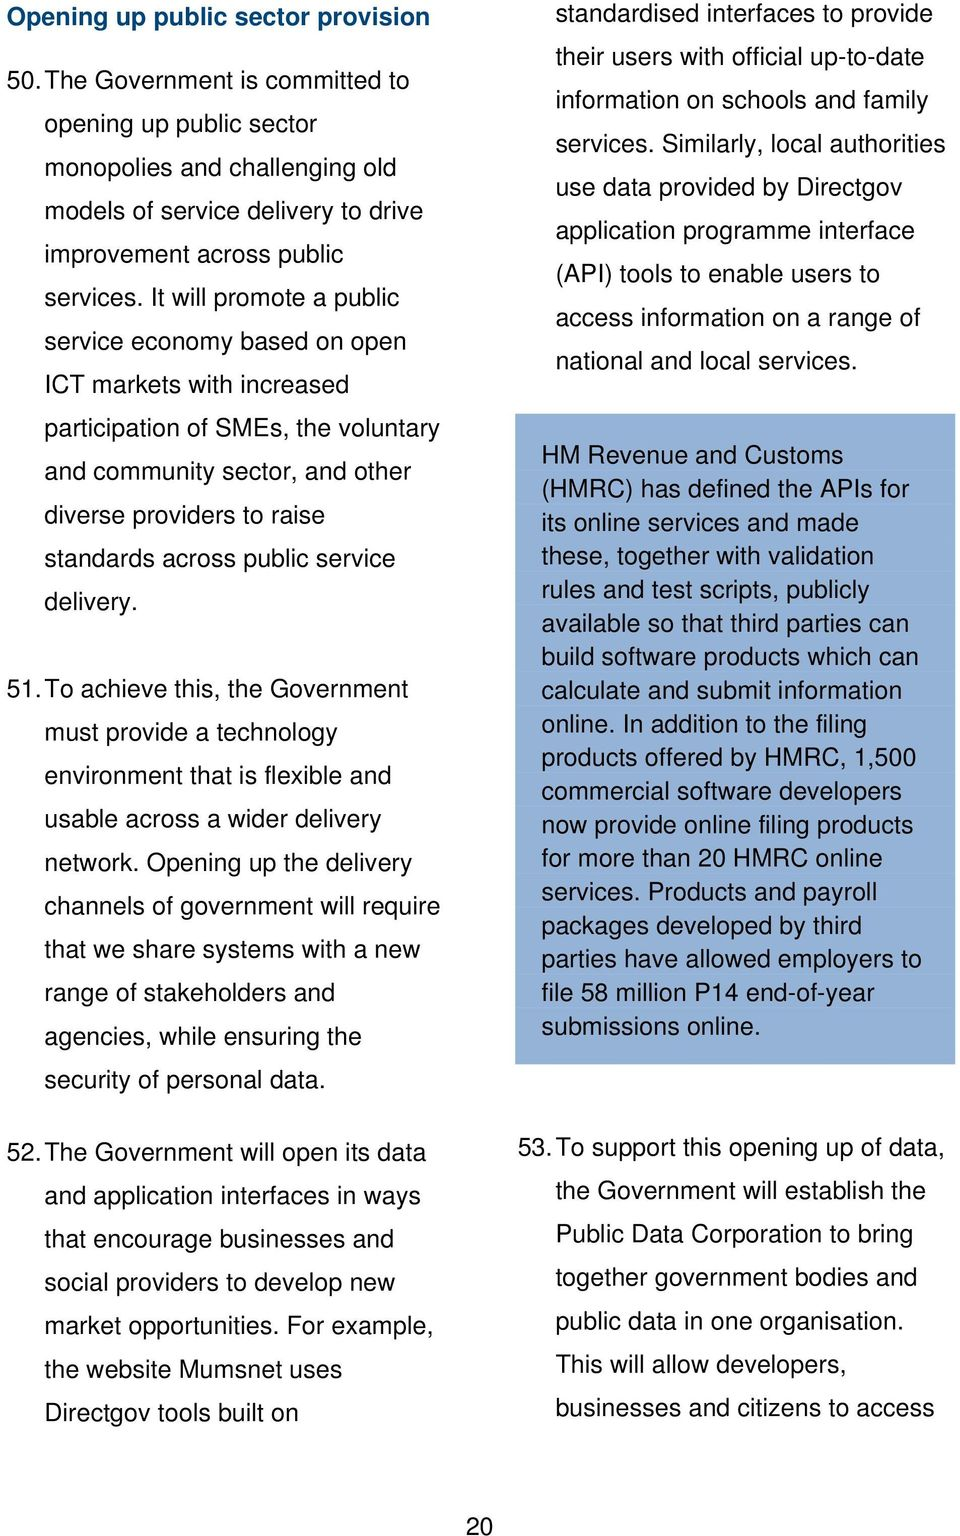 public service delivery. 51. To achieve this, the Government must provide a technology environment that is flexible and usable across a wider delivery network.